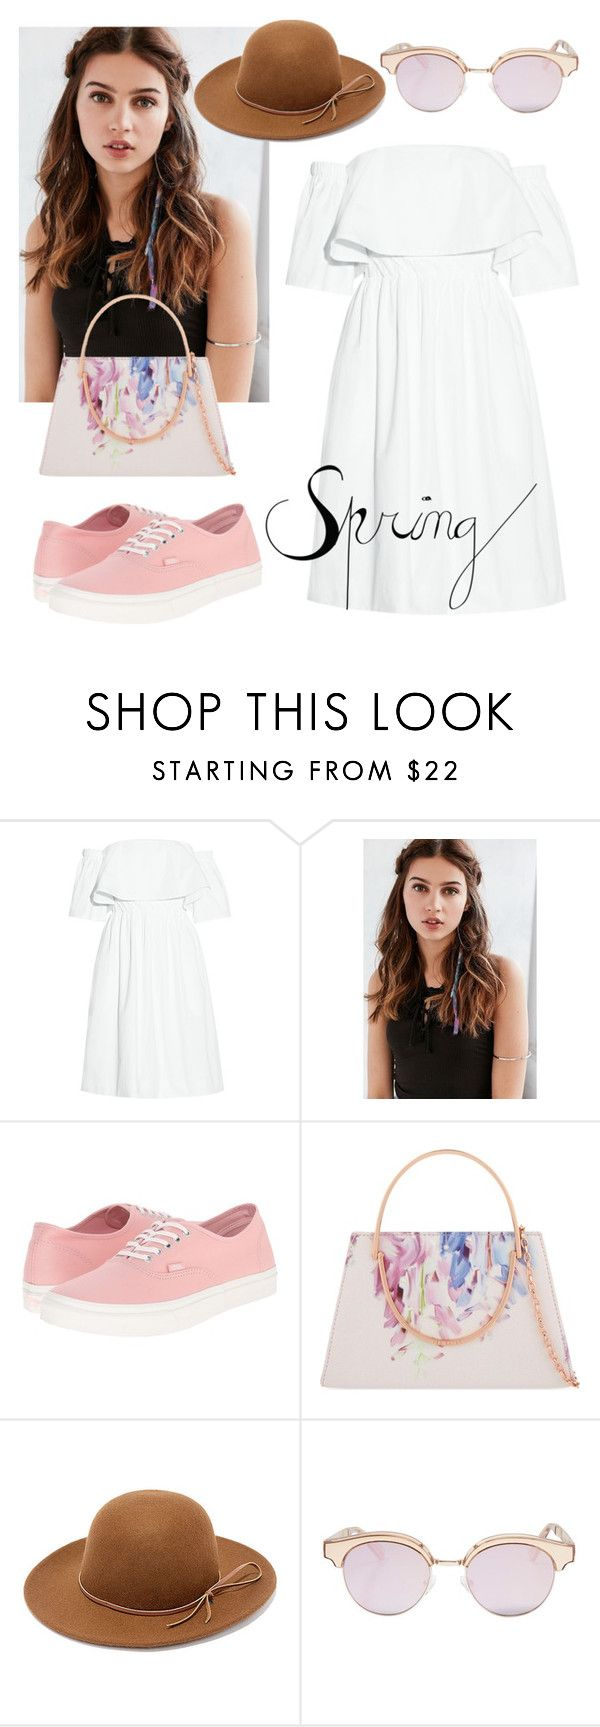 """""""Spring dress."""" by jasmine-clarine on Polyvore featuring Paper London, REGALROSE, Vans, Ted Baker, RHYTHM and Le Specs"""